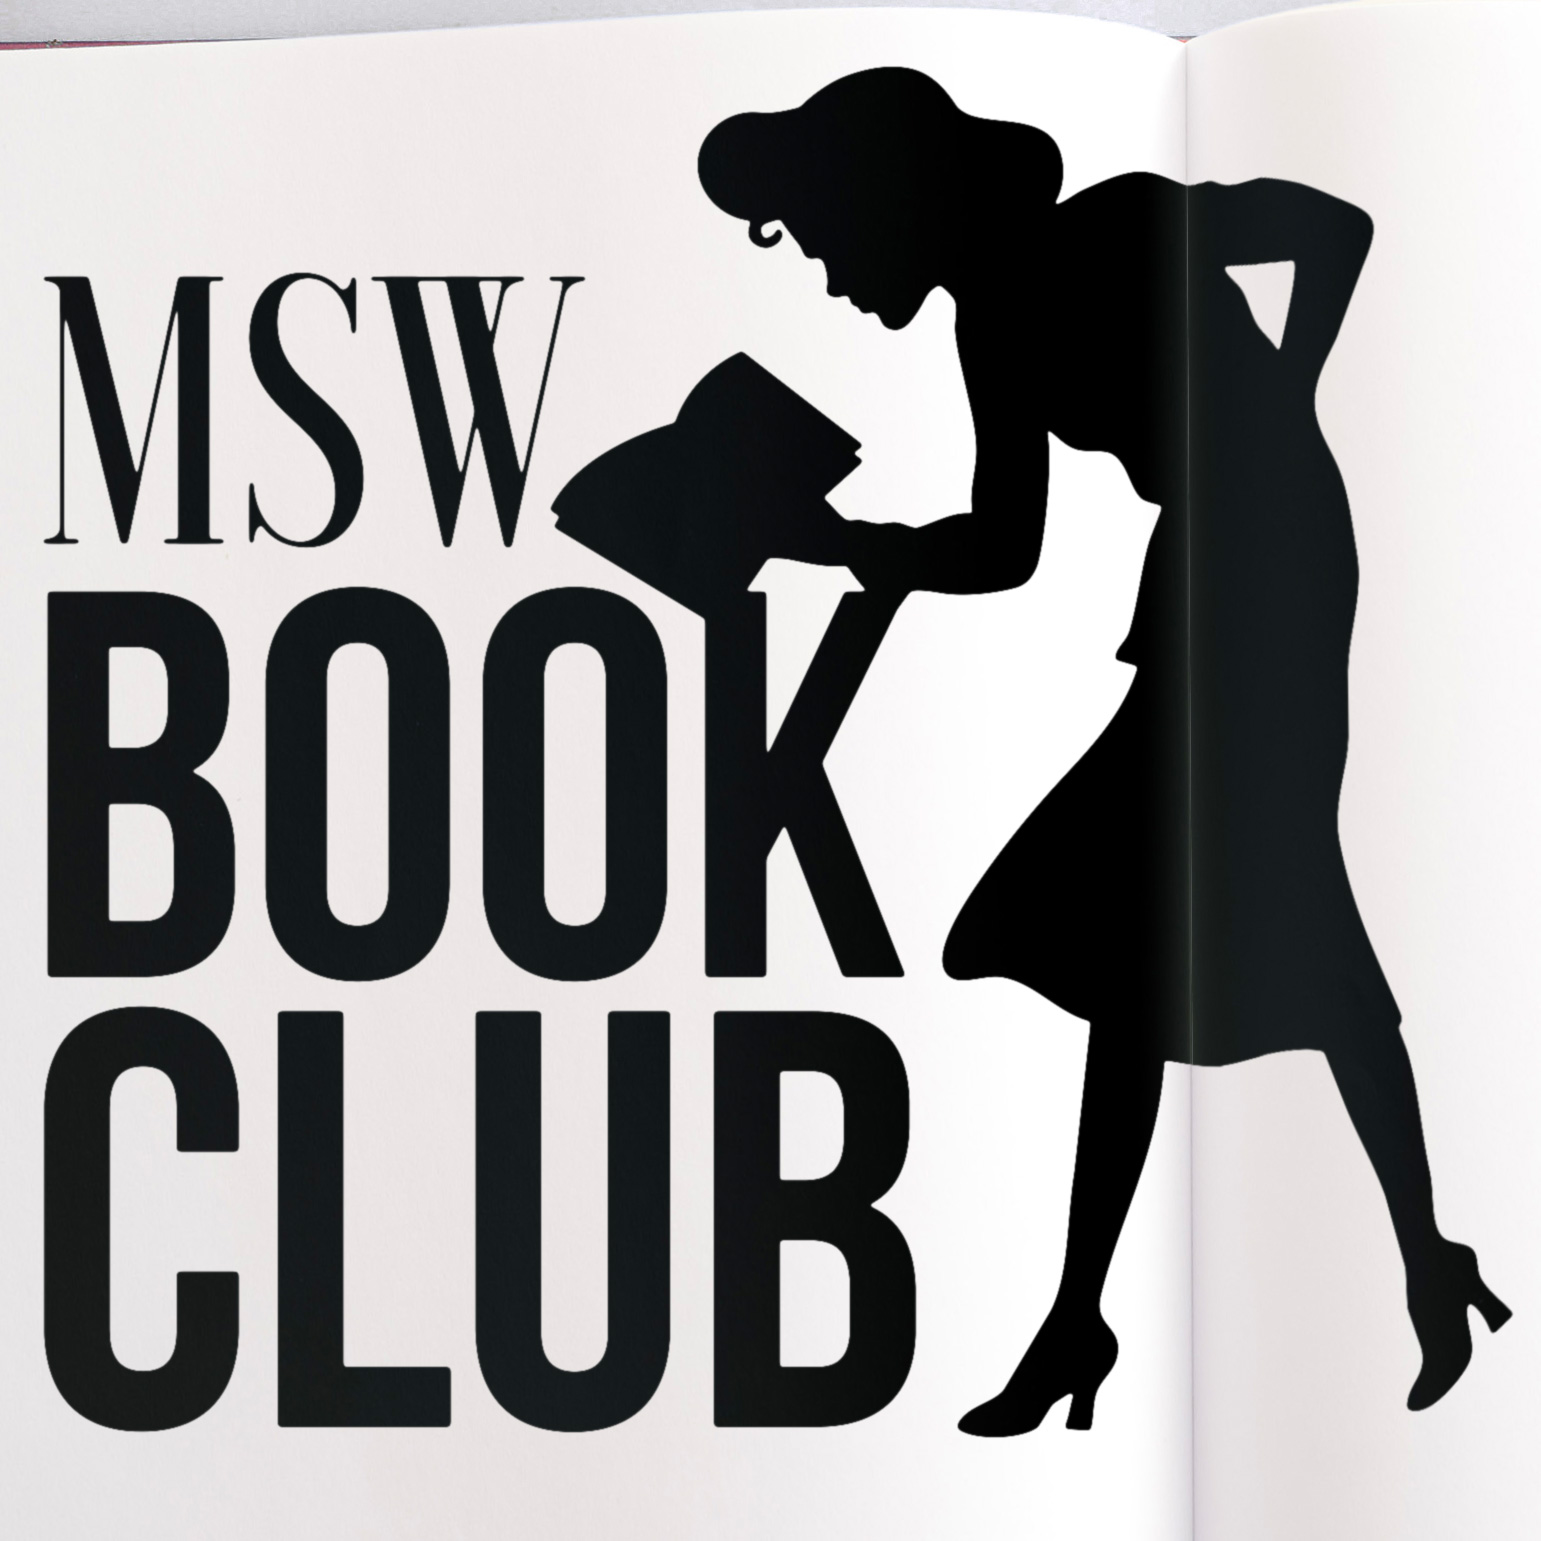 MSW Book Club Podcast Cover - Square